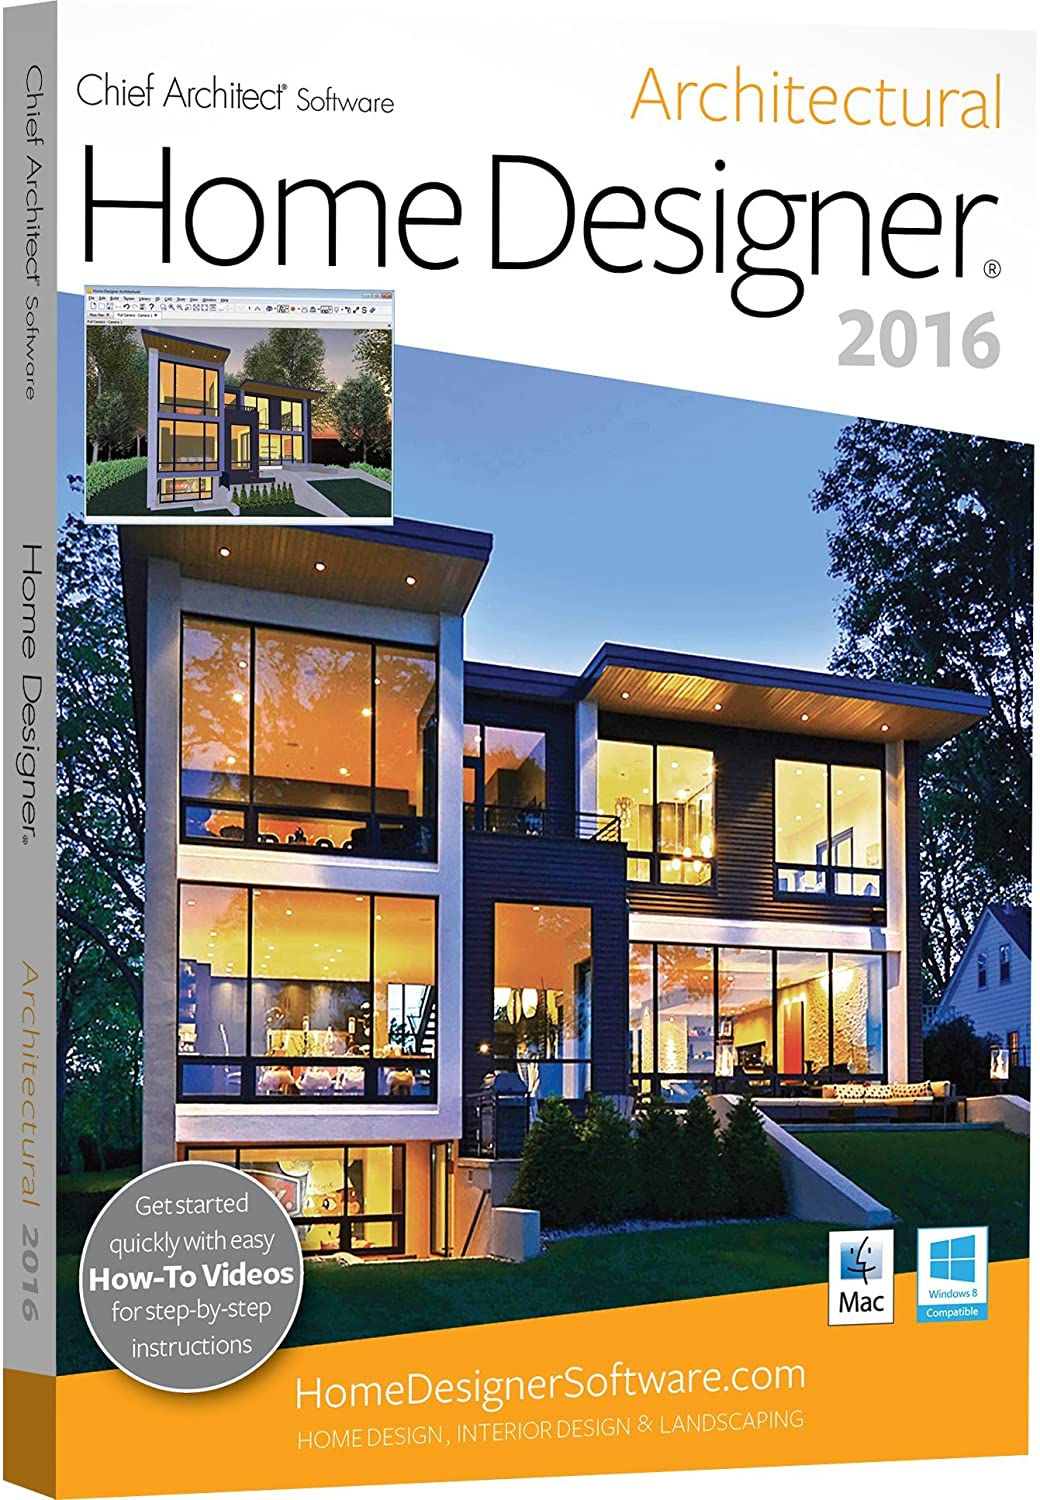 Chief Architect Home Designer Architectural 2016 Amazon In Software